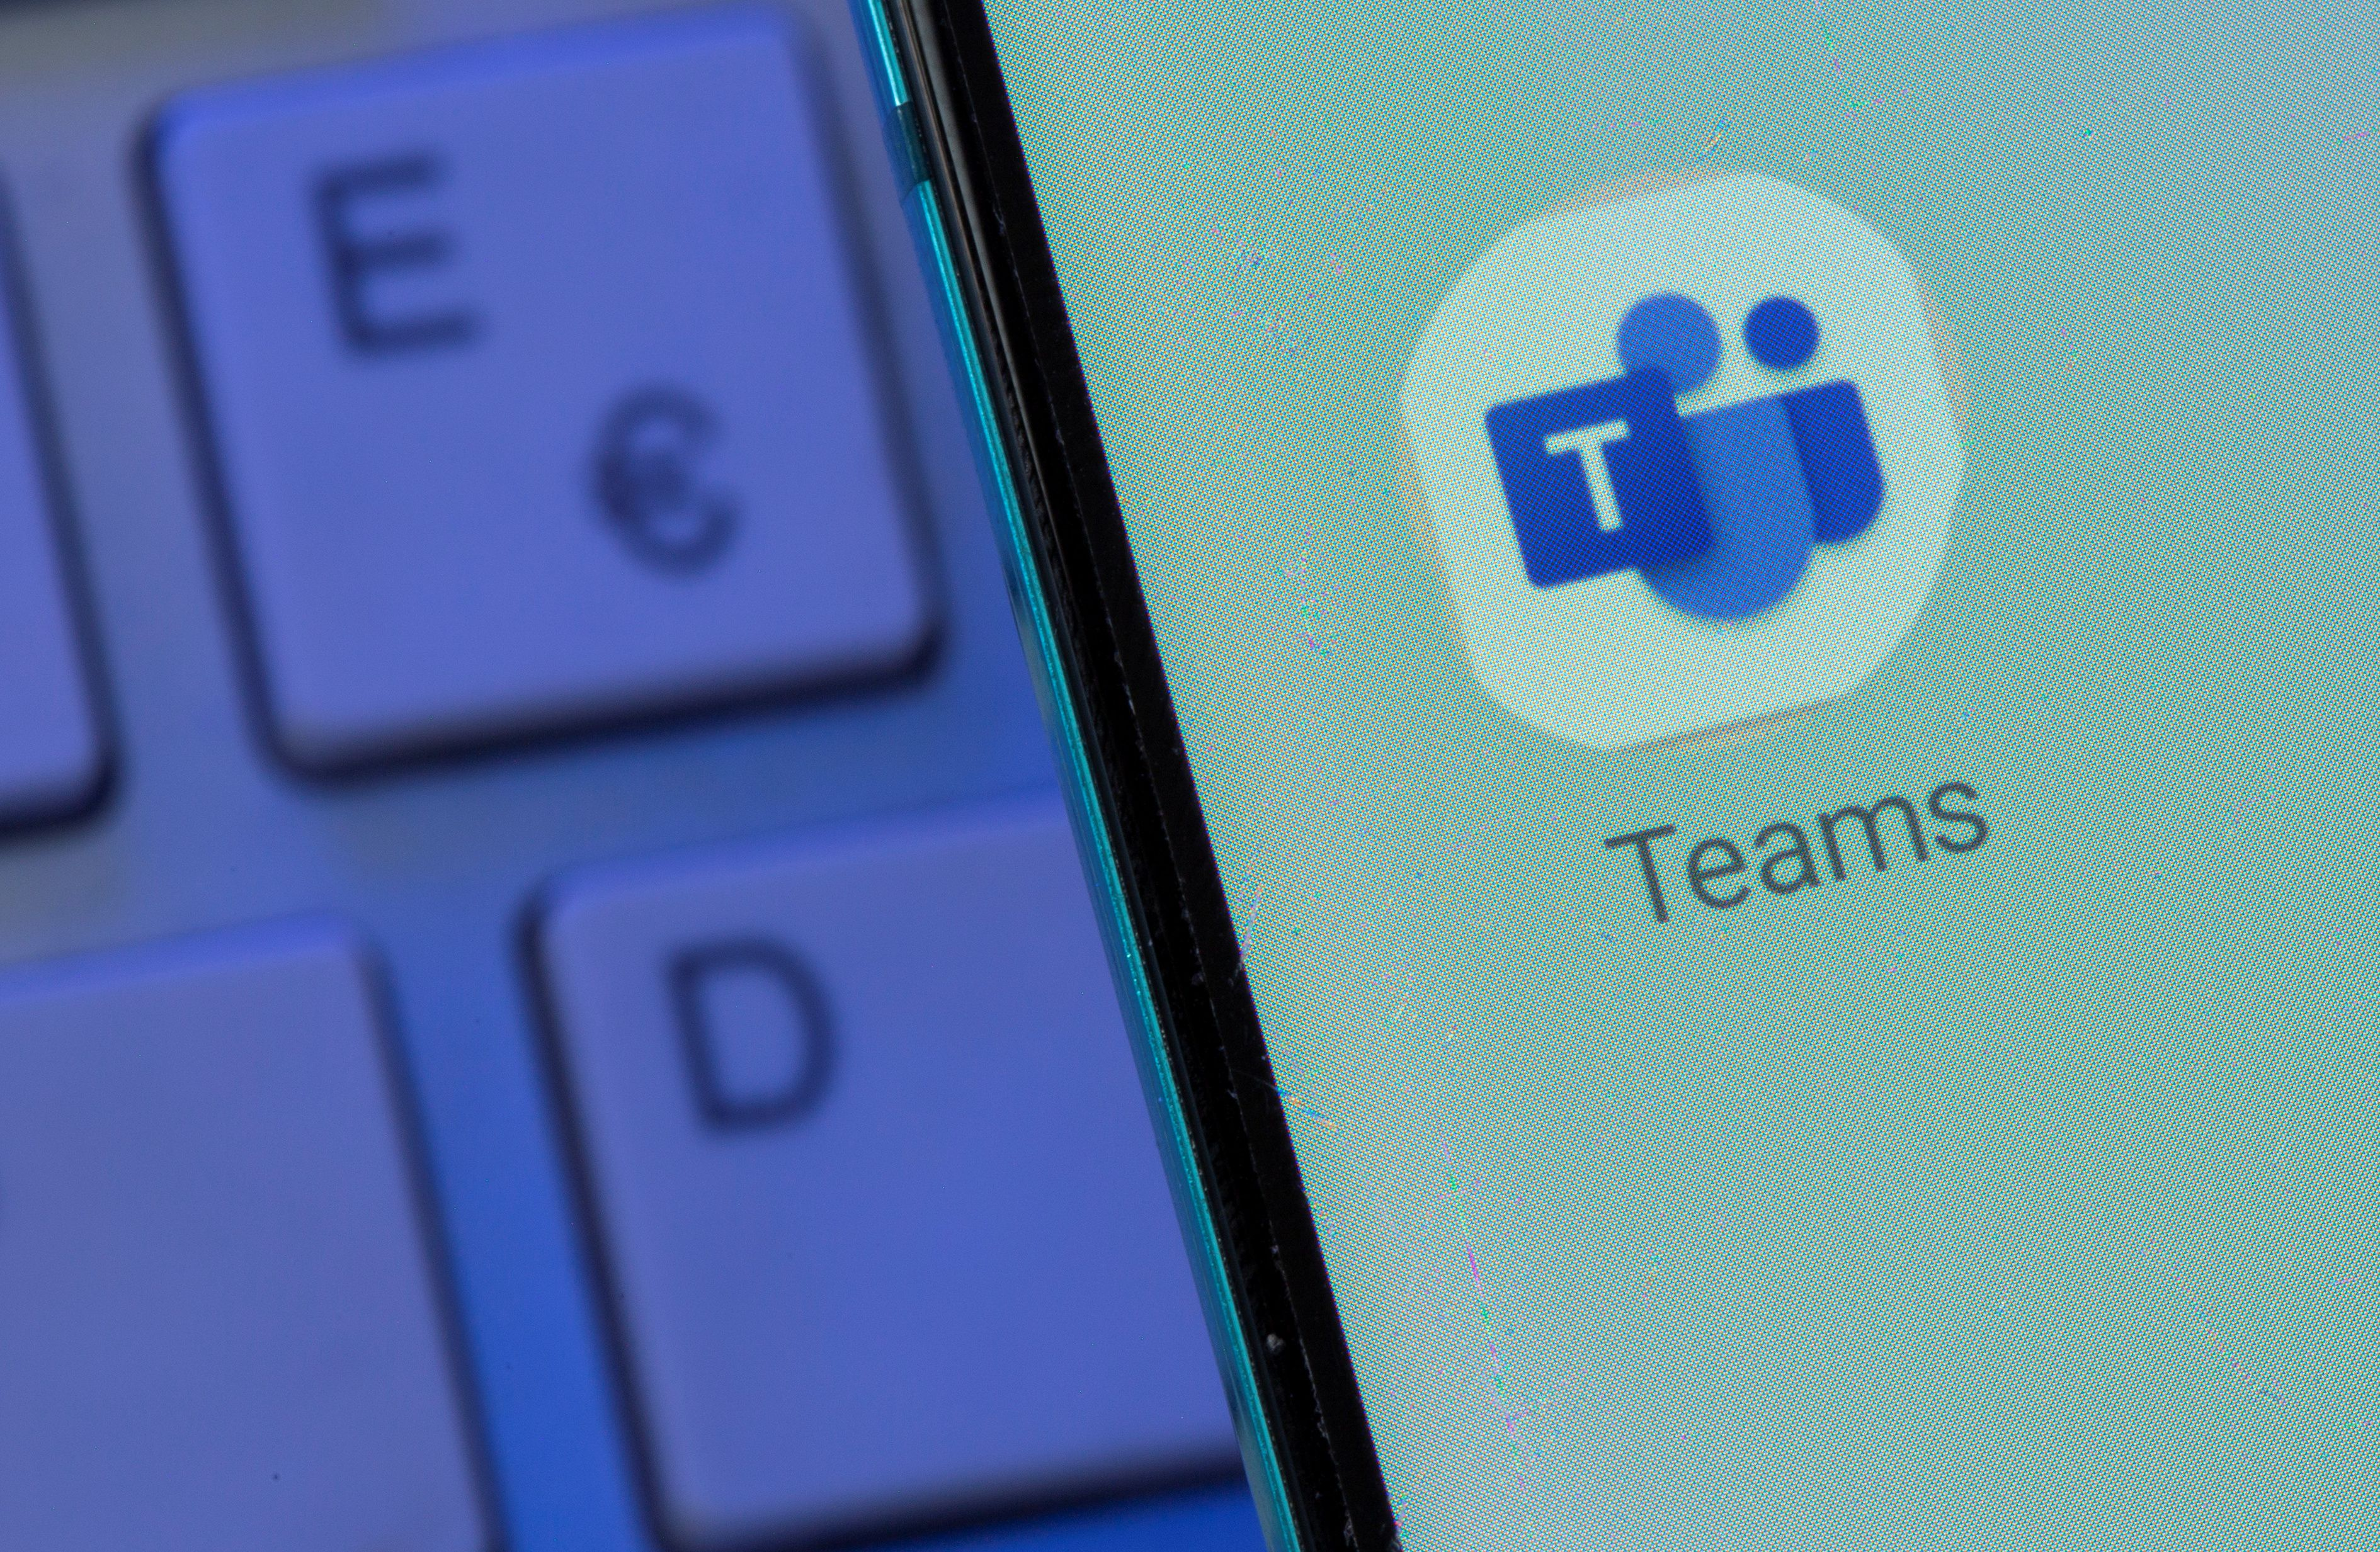 Microsoft Teams app is seen on the smartphone placed on the keyboard in this illustration taken, July 26, 2021. REUTERS/Dado Ruvic/Illustration